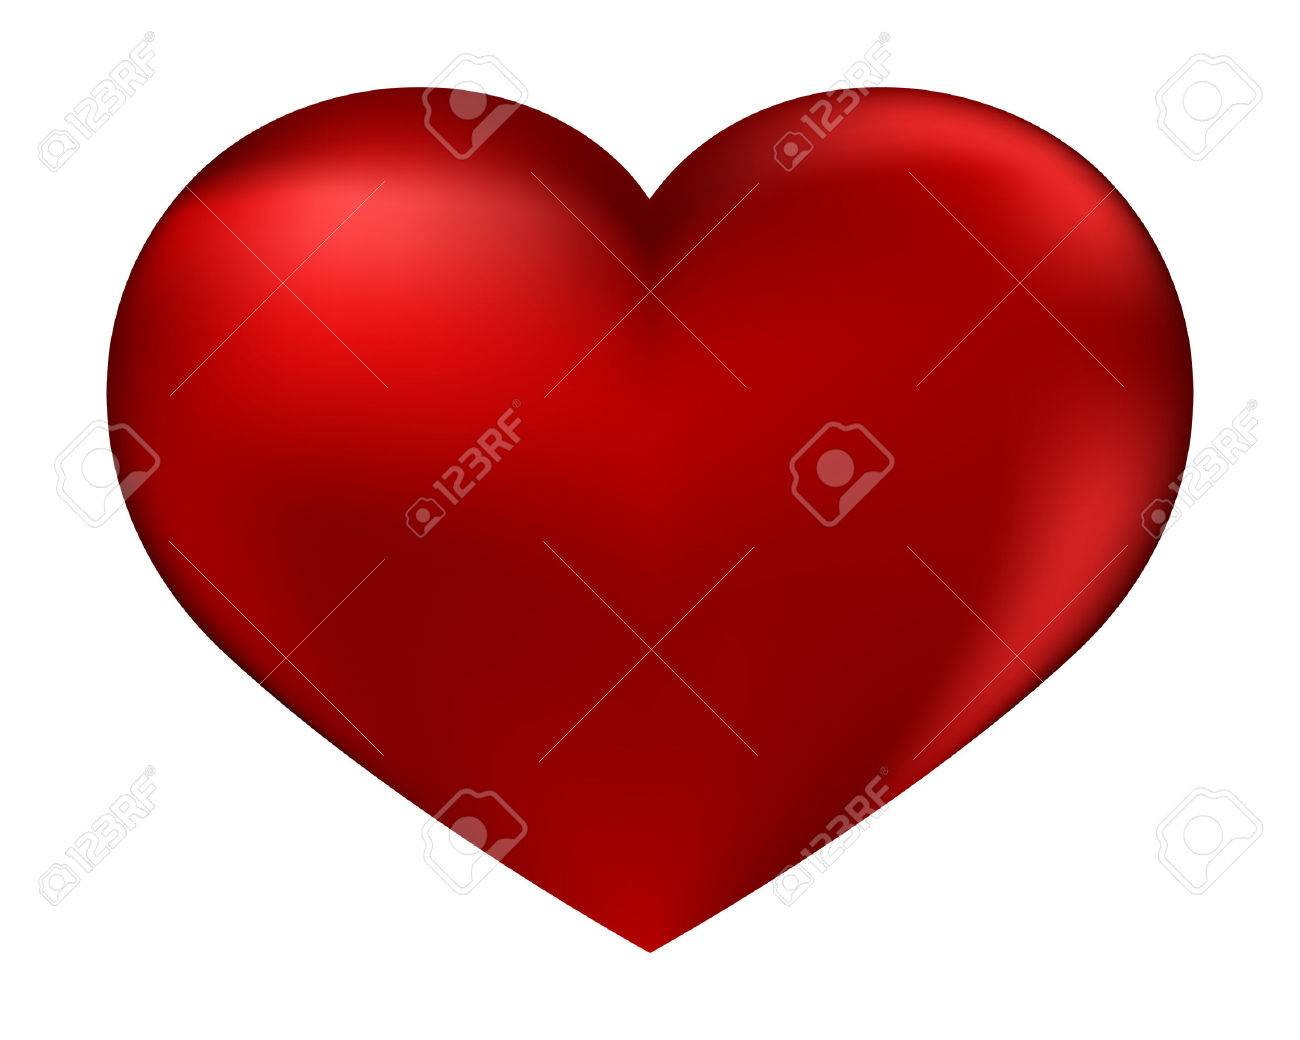 The isolated red heart on a white background by day of sacred Valentine Stock Vector - 8696178